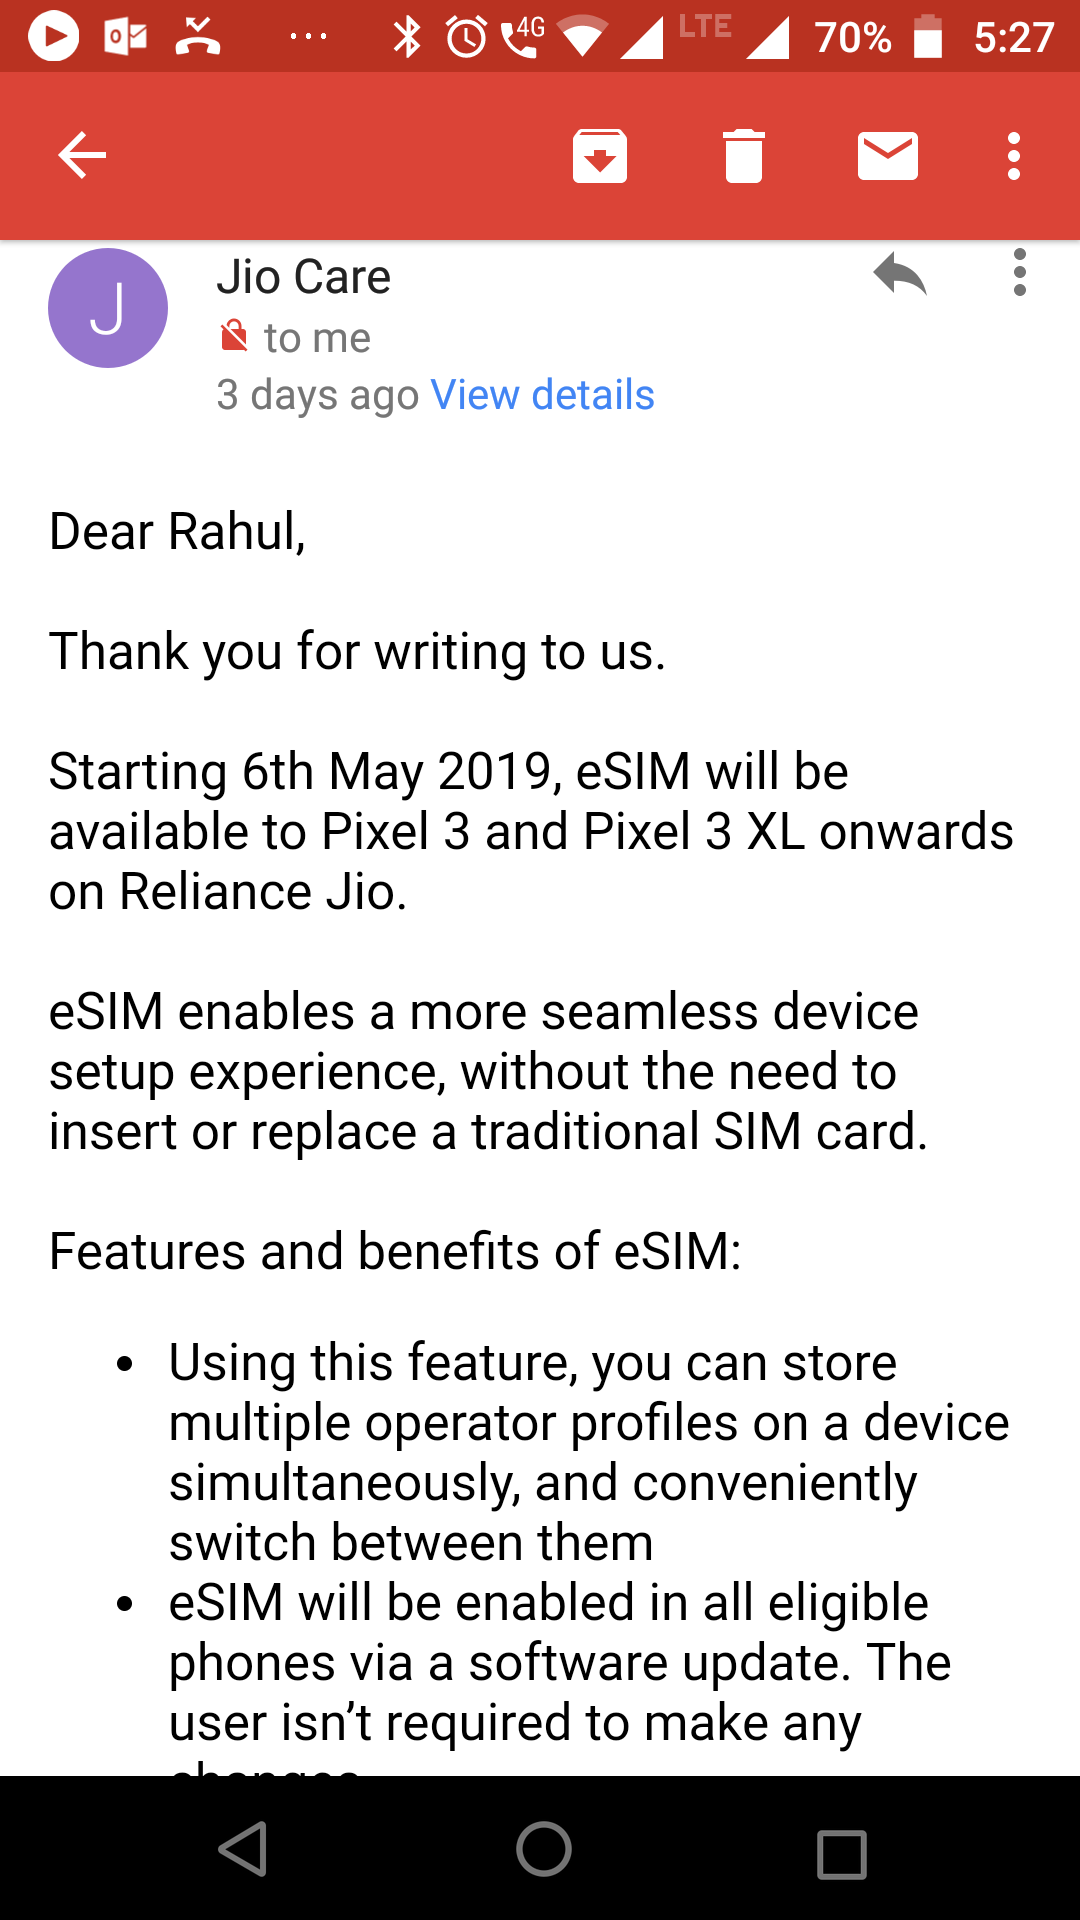 Please let me know carriers in India supporting esim for